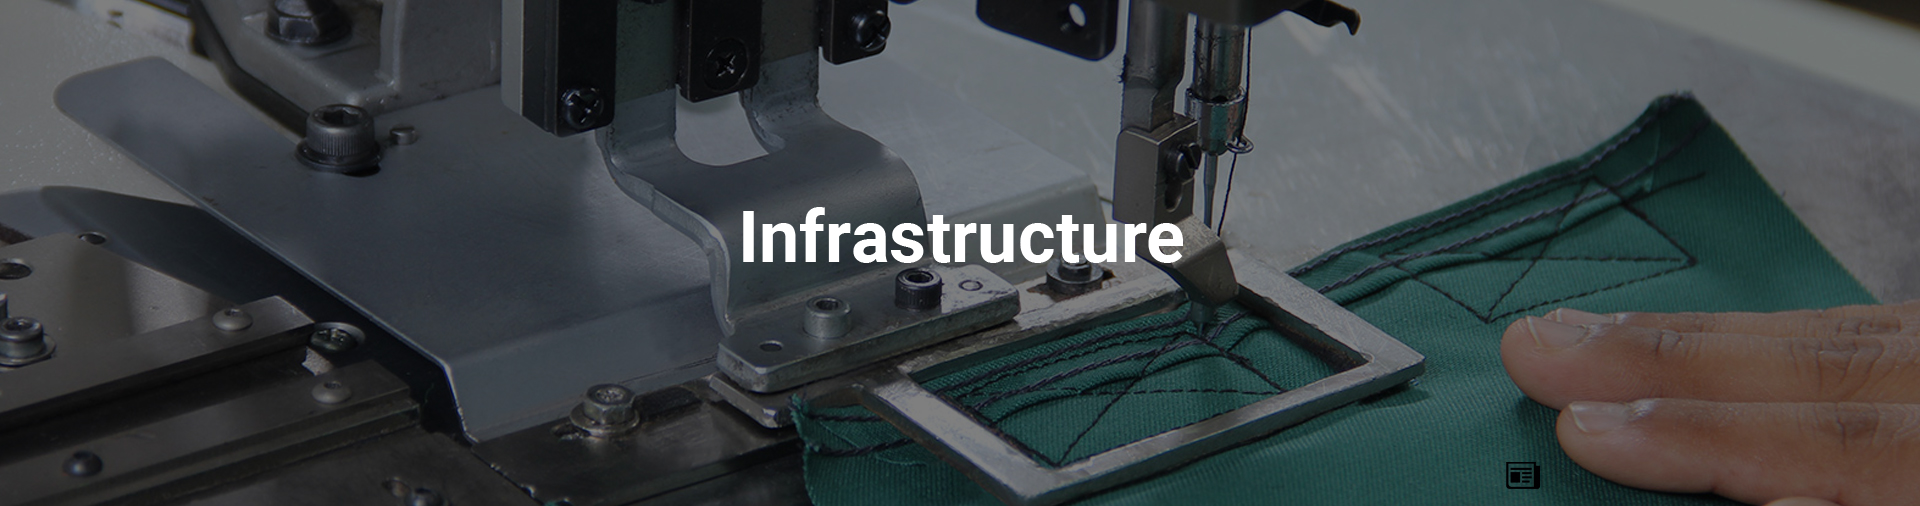 pommys-manufacturing infrastructure